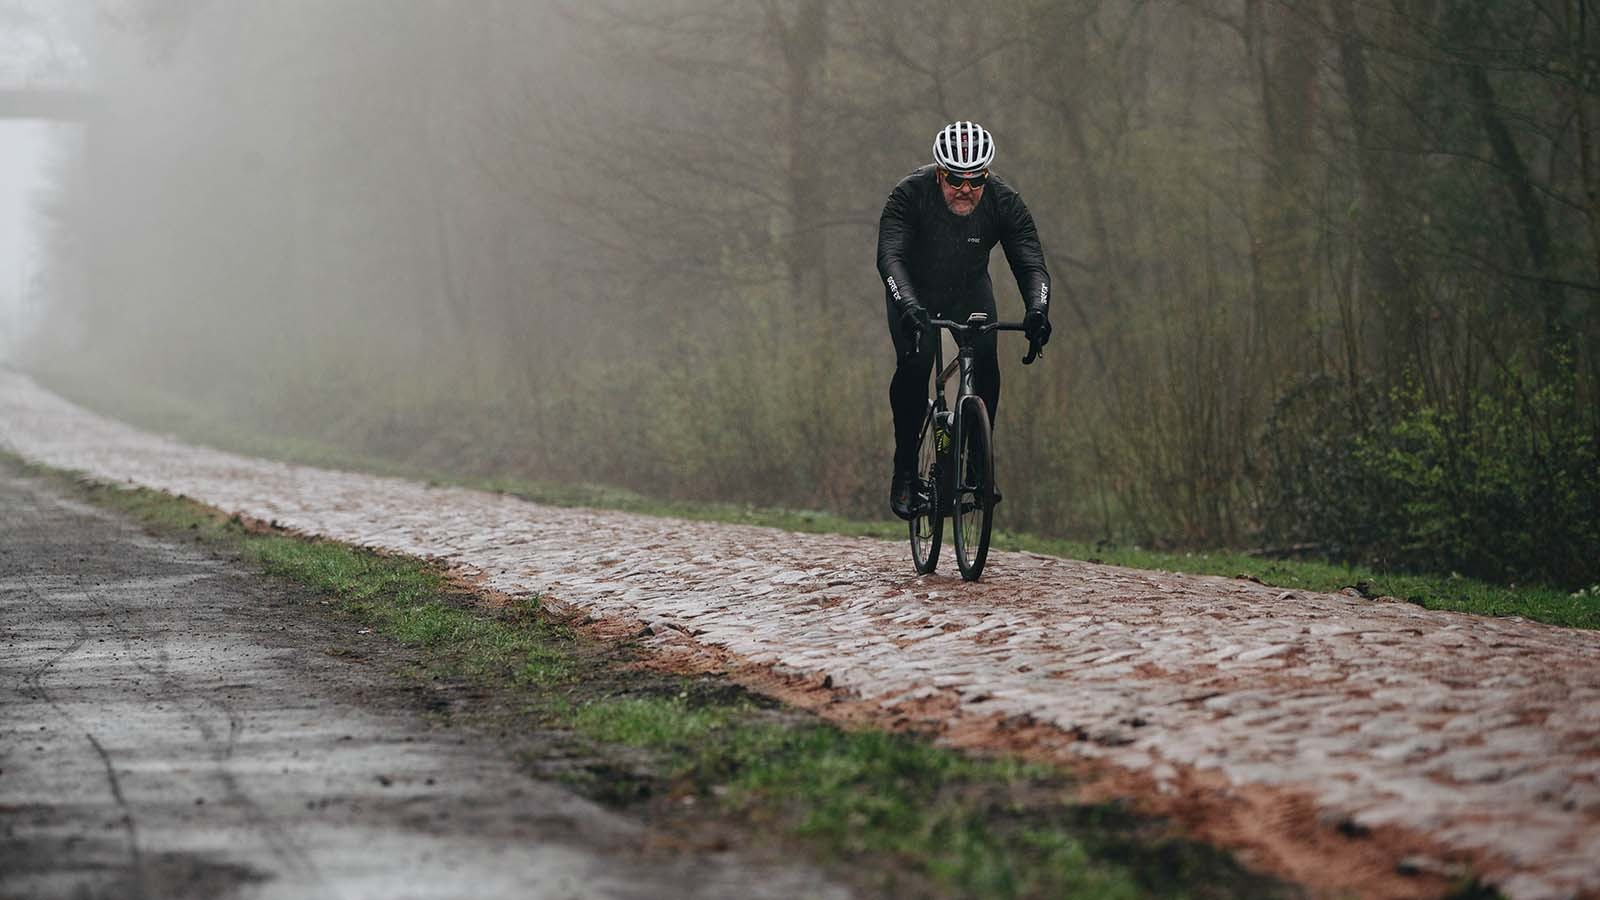 The Specialized Roubaix being ridden on coibbles by tech editor Warren Rossiter